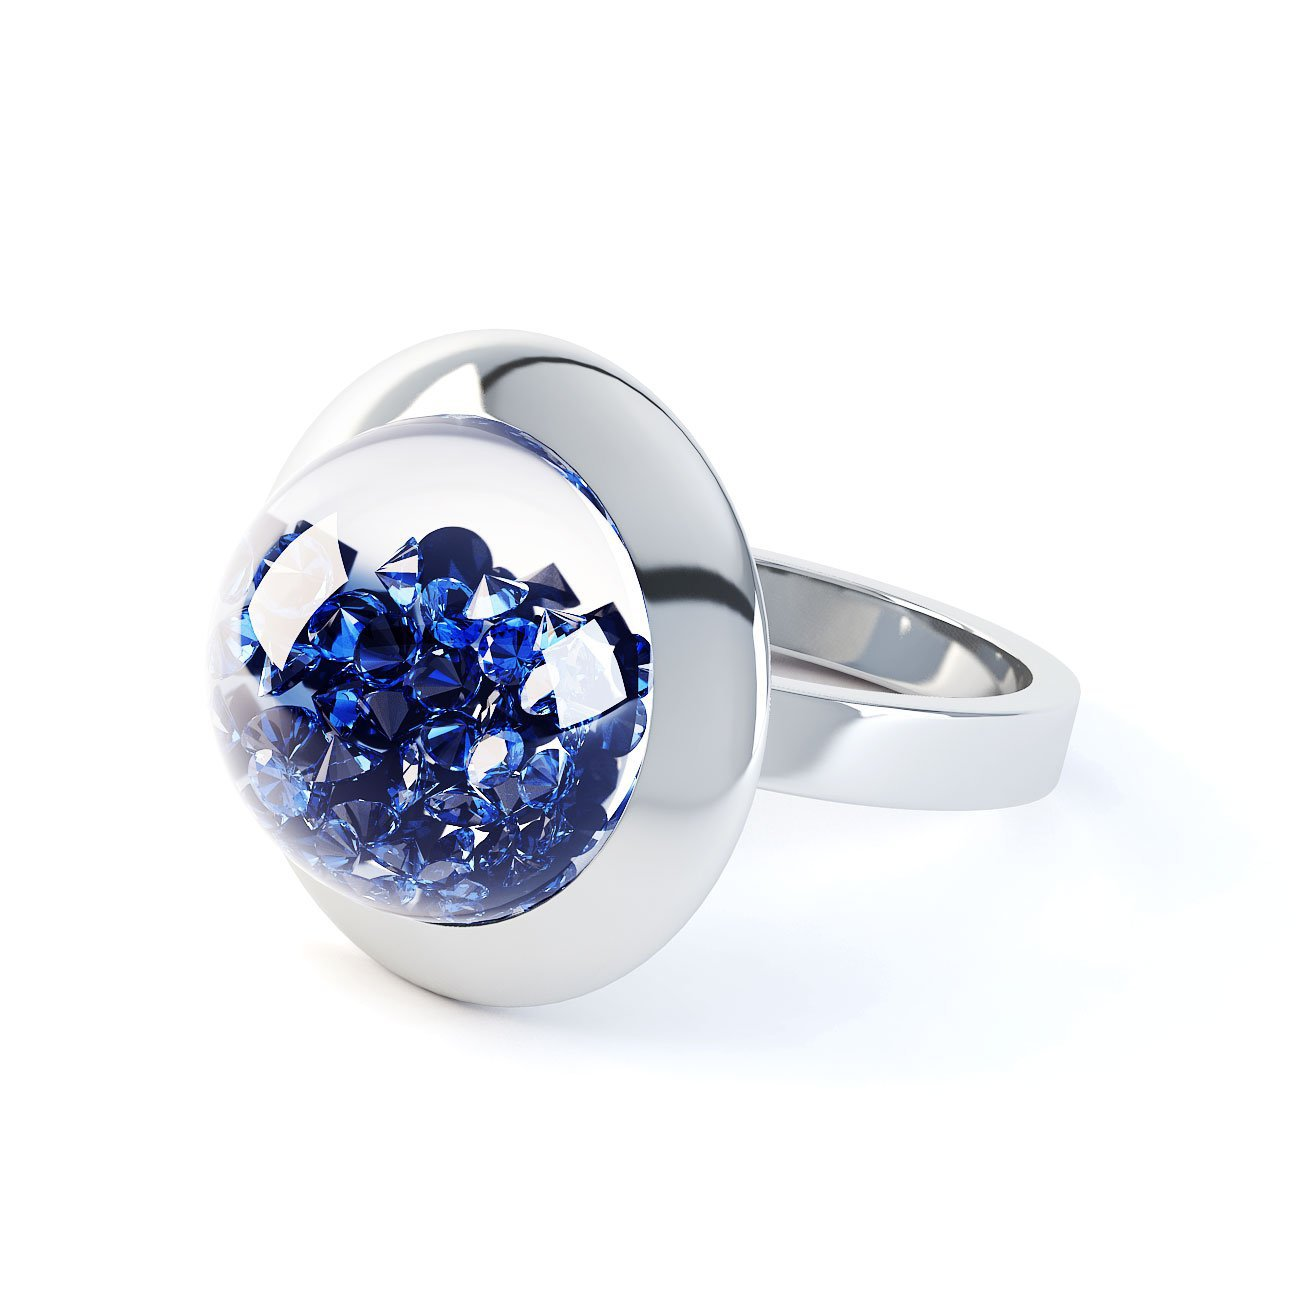 SnowDome 1ct. Blue Sapphire Dome 18ct Gold Ring